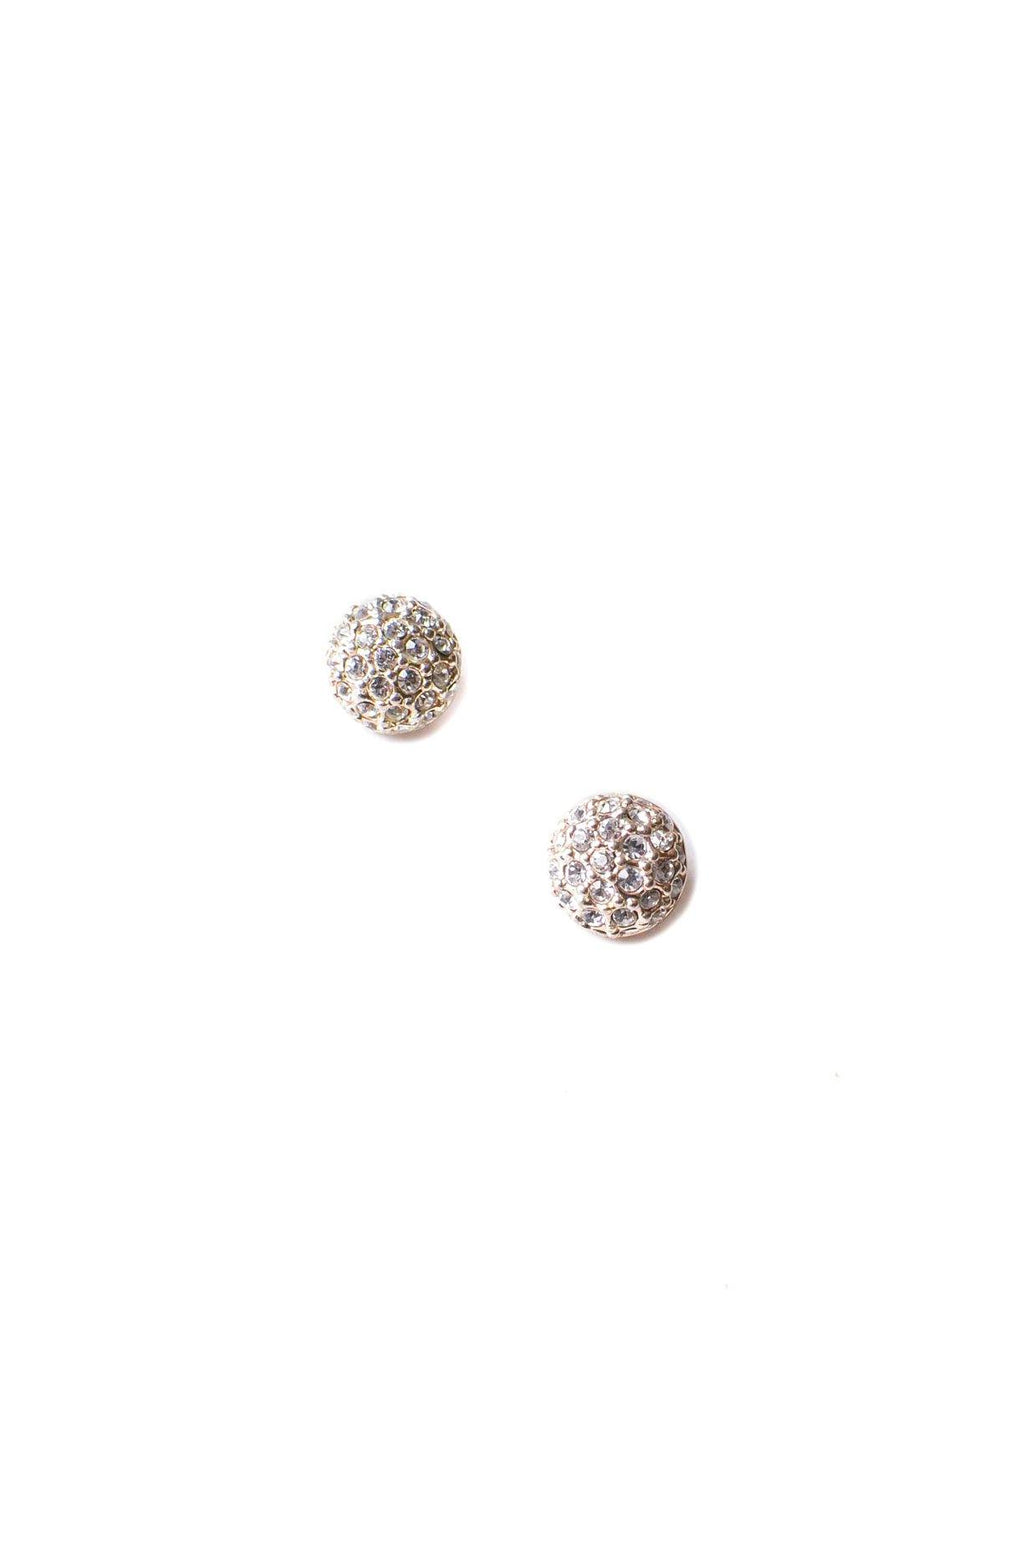 Givenchy Rhinestone Earrings